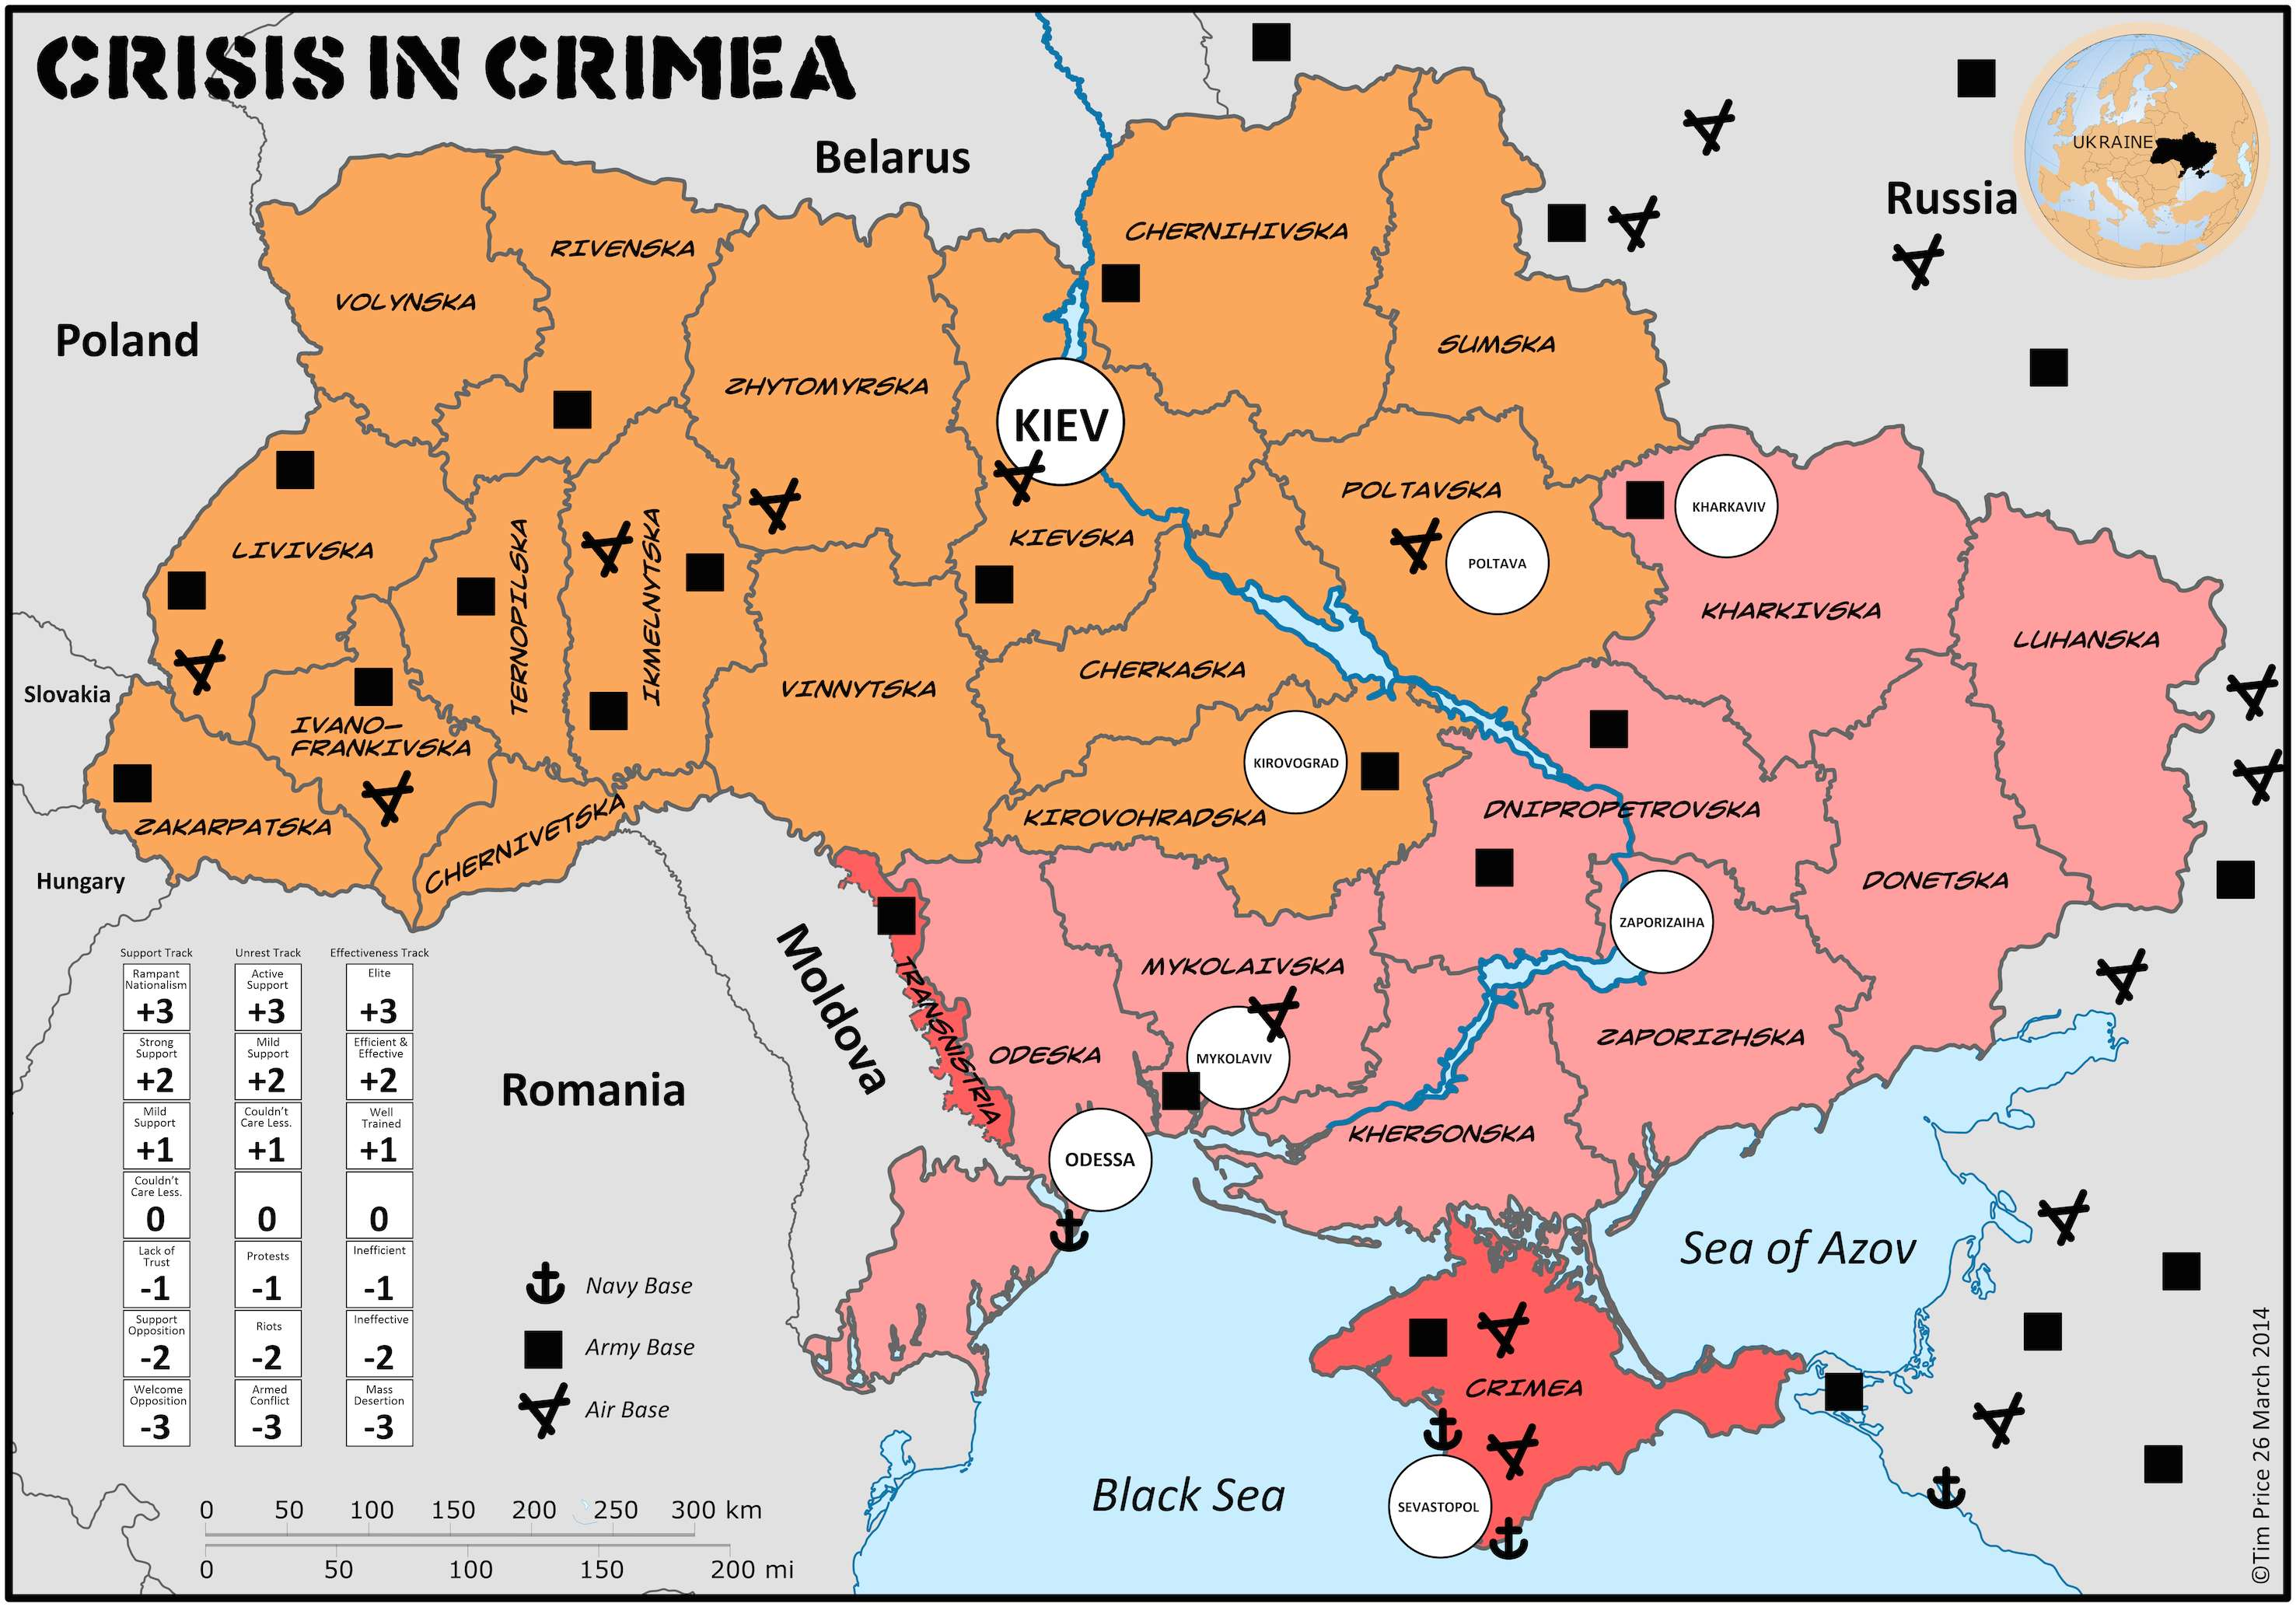 Review matrix games for modern wargaming paxsims map for crisis in crimea publicscrutiny Images